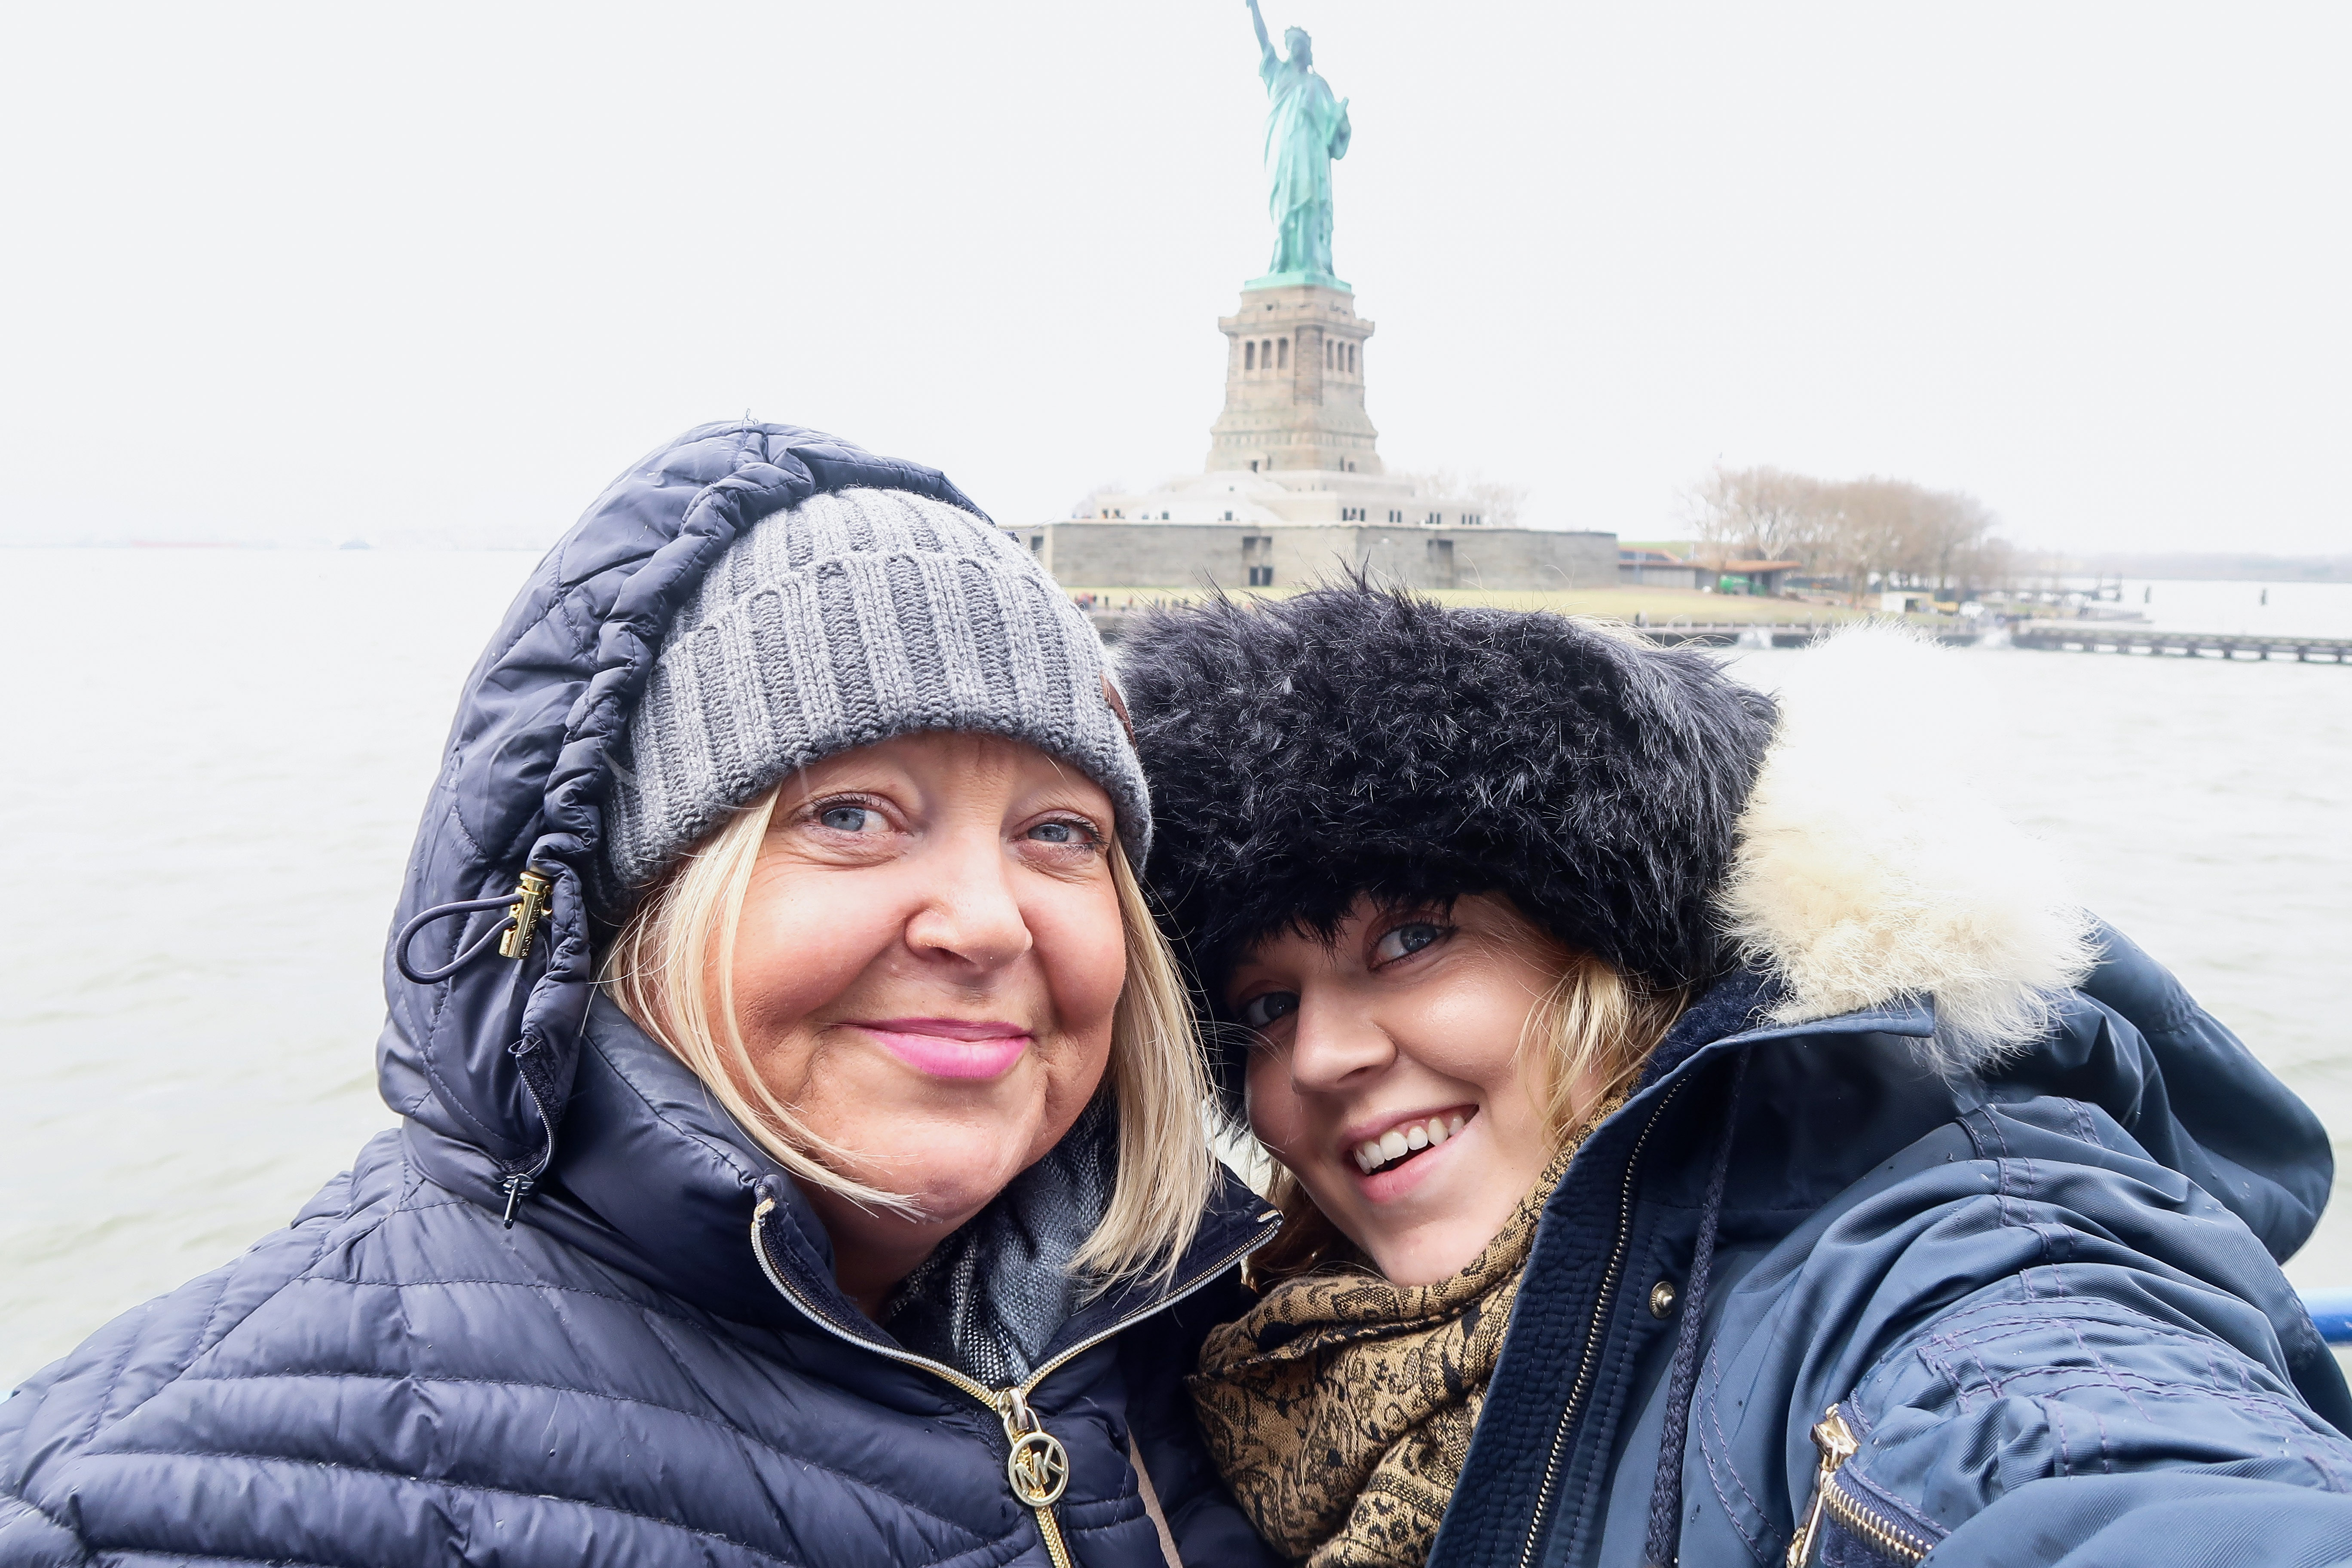 Statue of Liberty   5 top tips for planning a visit to New York City   Things you should know before you visit the big apple   Travel Guide   Elle Blonde Luxury Lifestyle Destination Blog